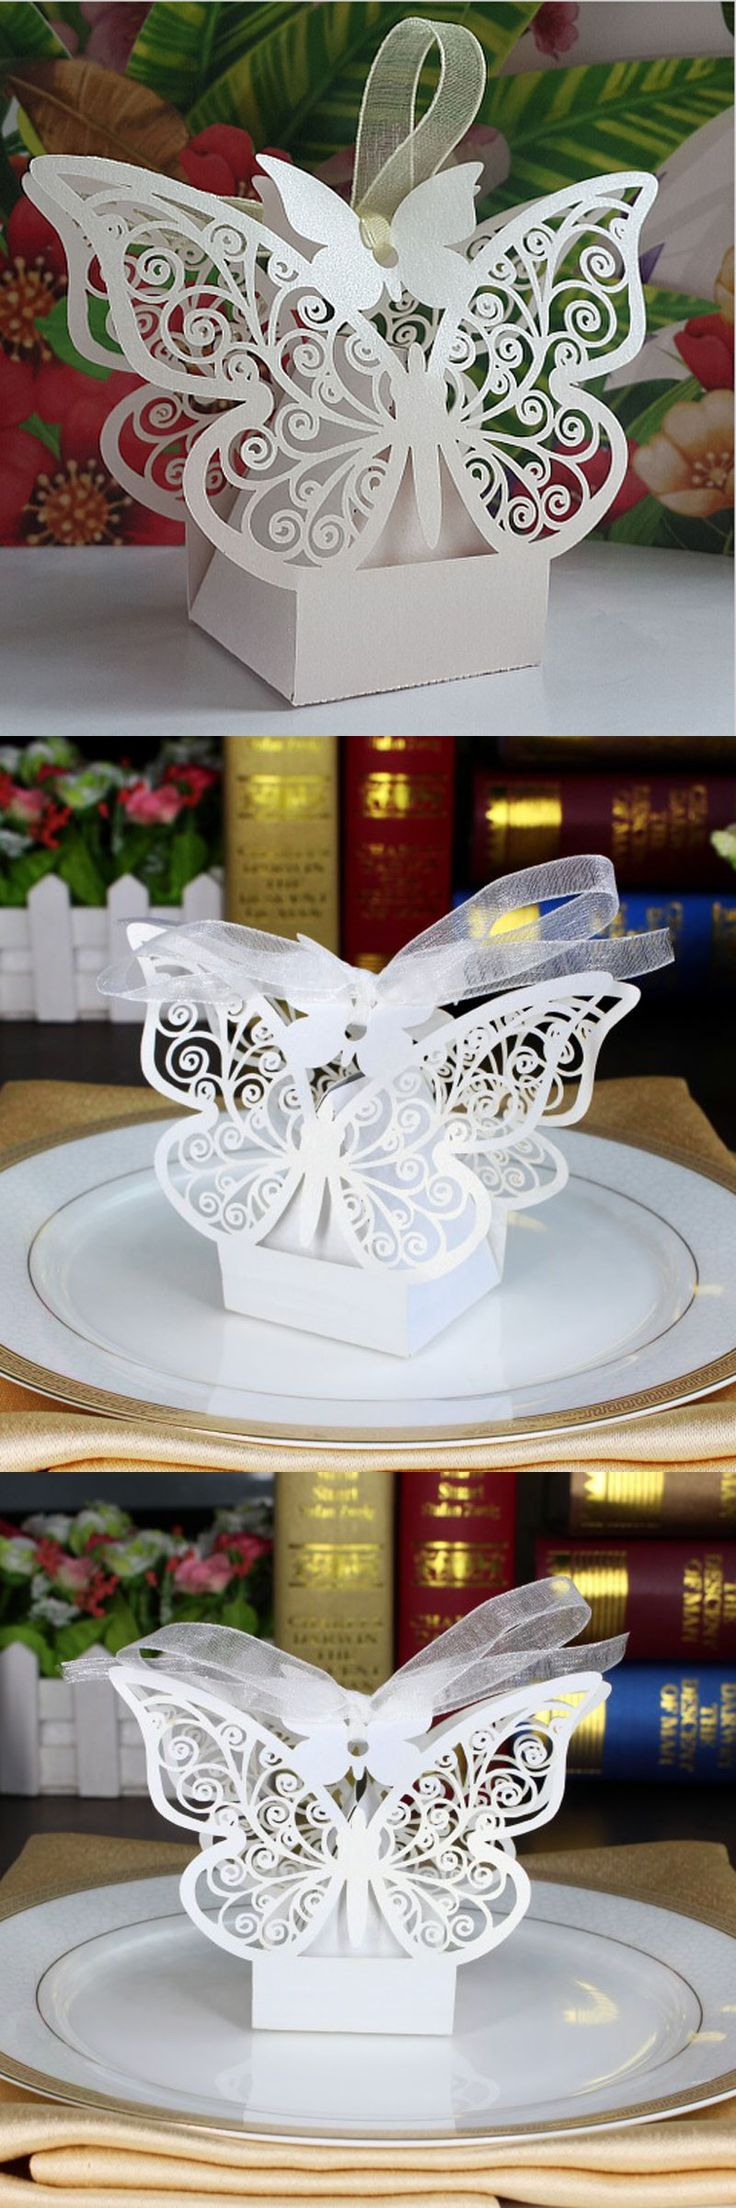 50pcs White Butterfly Wedding Favor Box Candy Box,Wedding Favors And Gifts,Wedding Supplies,Wedding Box For Candy,Paper Box